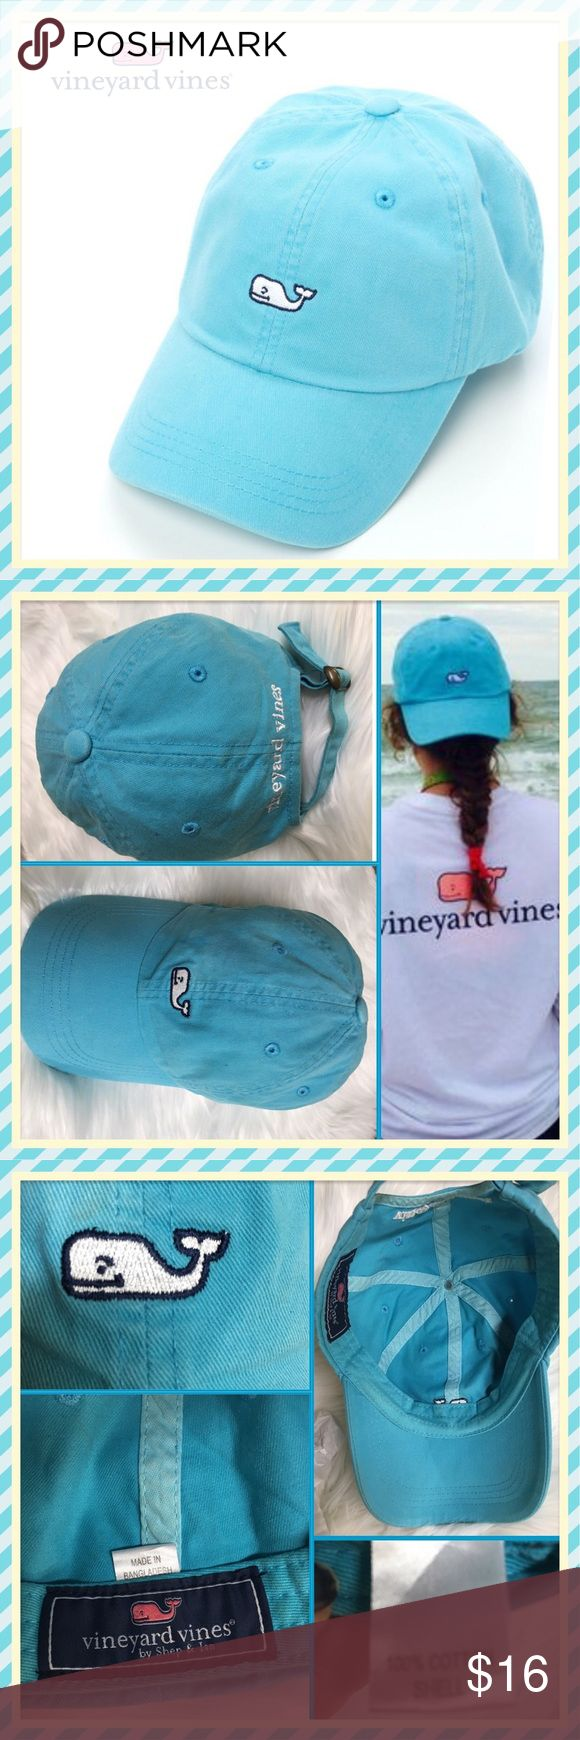 🆕VINEYARD VINES Blue baseball cap/Unisex VINEYARD VINES Blue baseball cap/Unisex. OSFA Details in photos First photo is stock & all the rest are actual cap for sale that I shot myself. EUC Vineyard Vines Accessories Hats